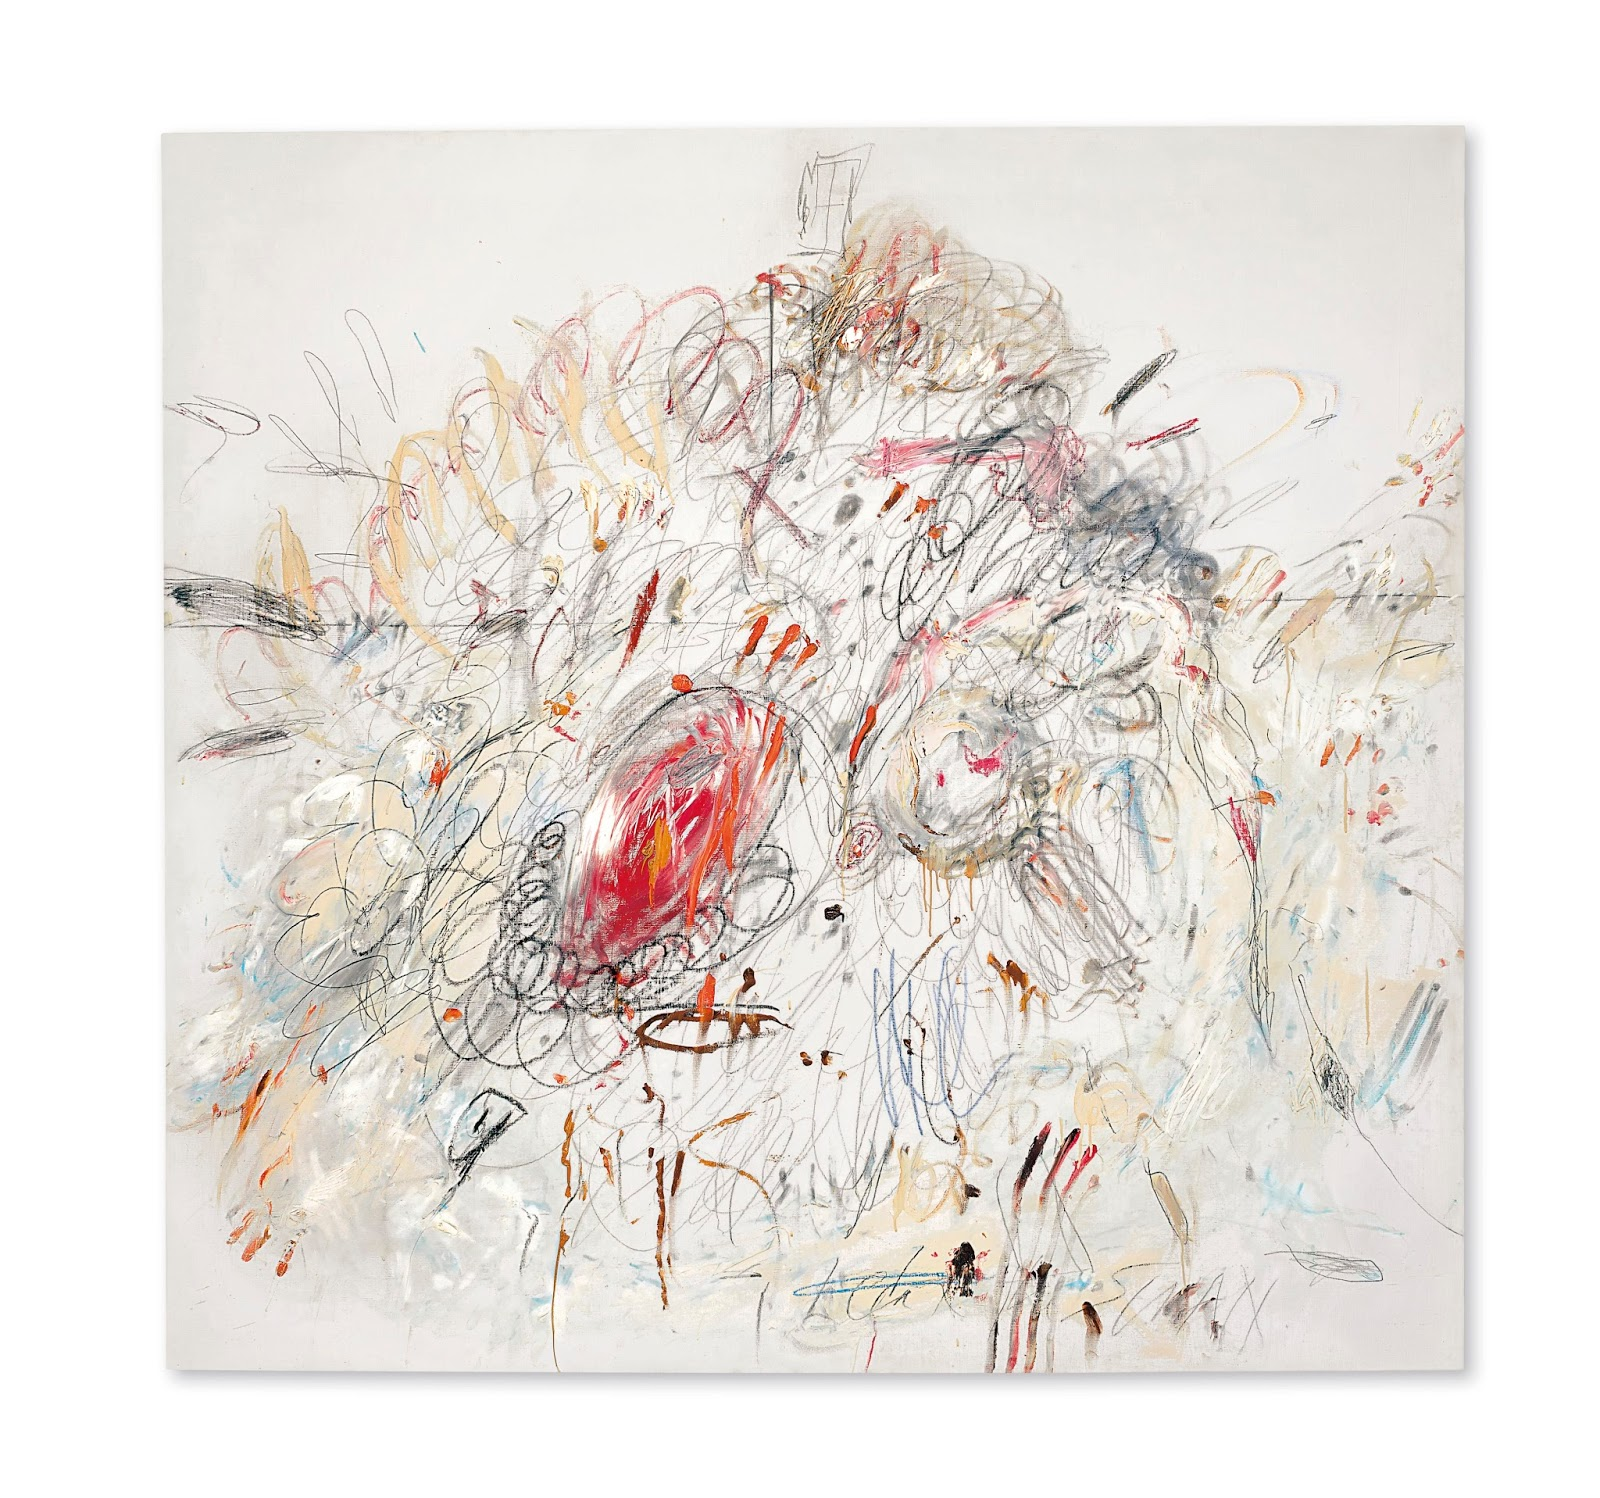 dc9251f58f8 Cy Twombly Leda and the Swan Sells for  52.9 Million Dollars ...